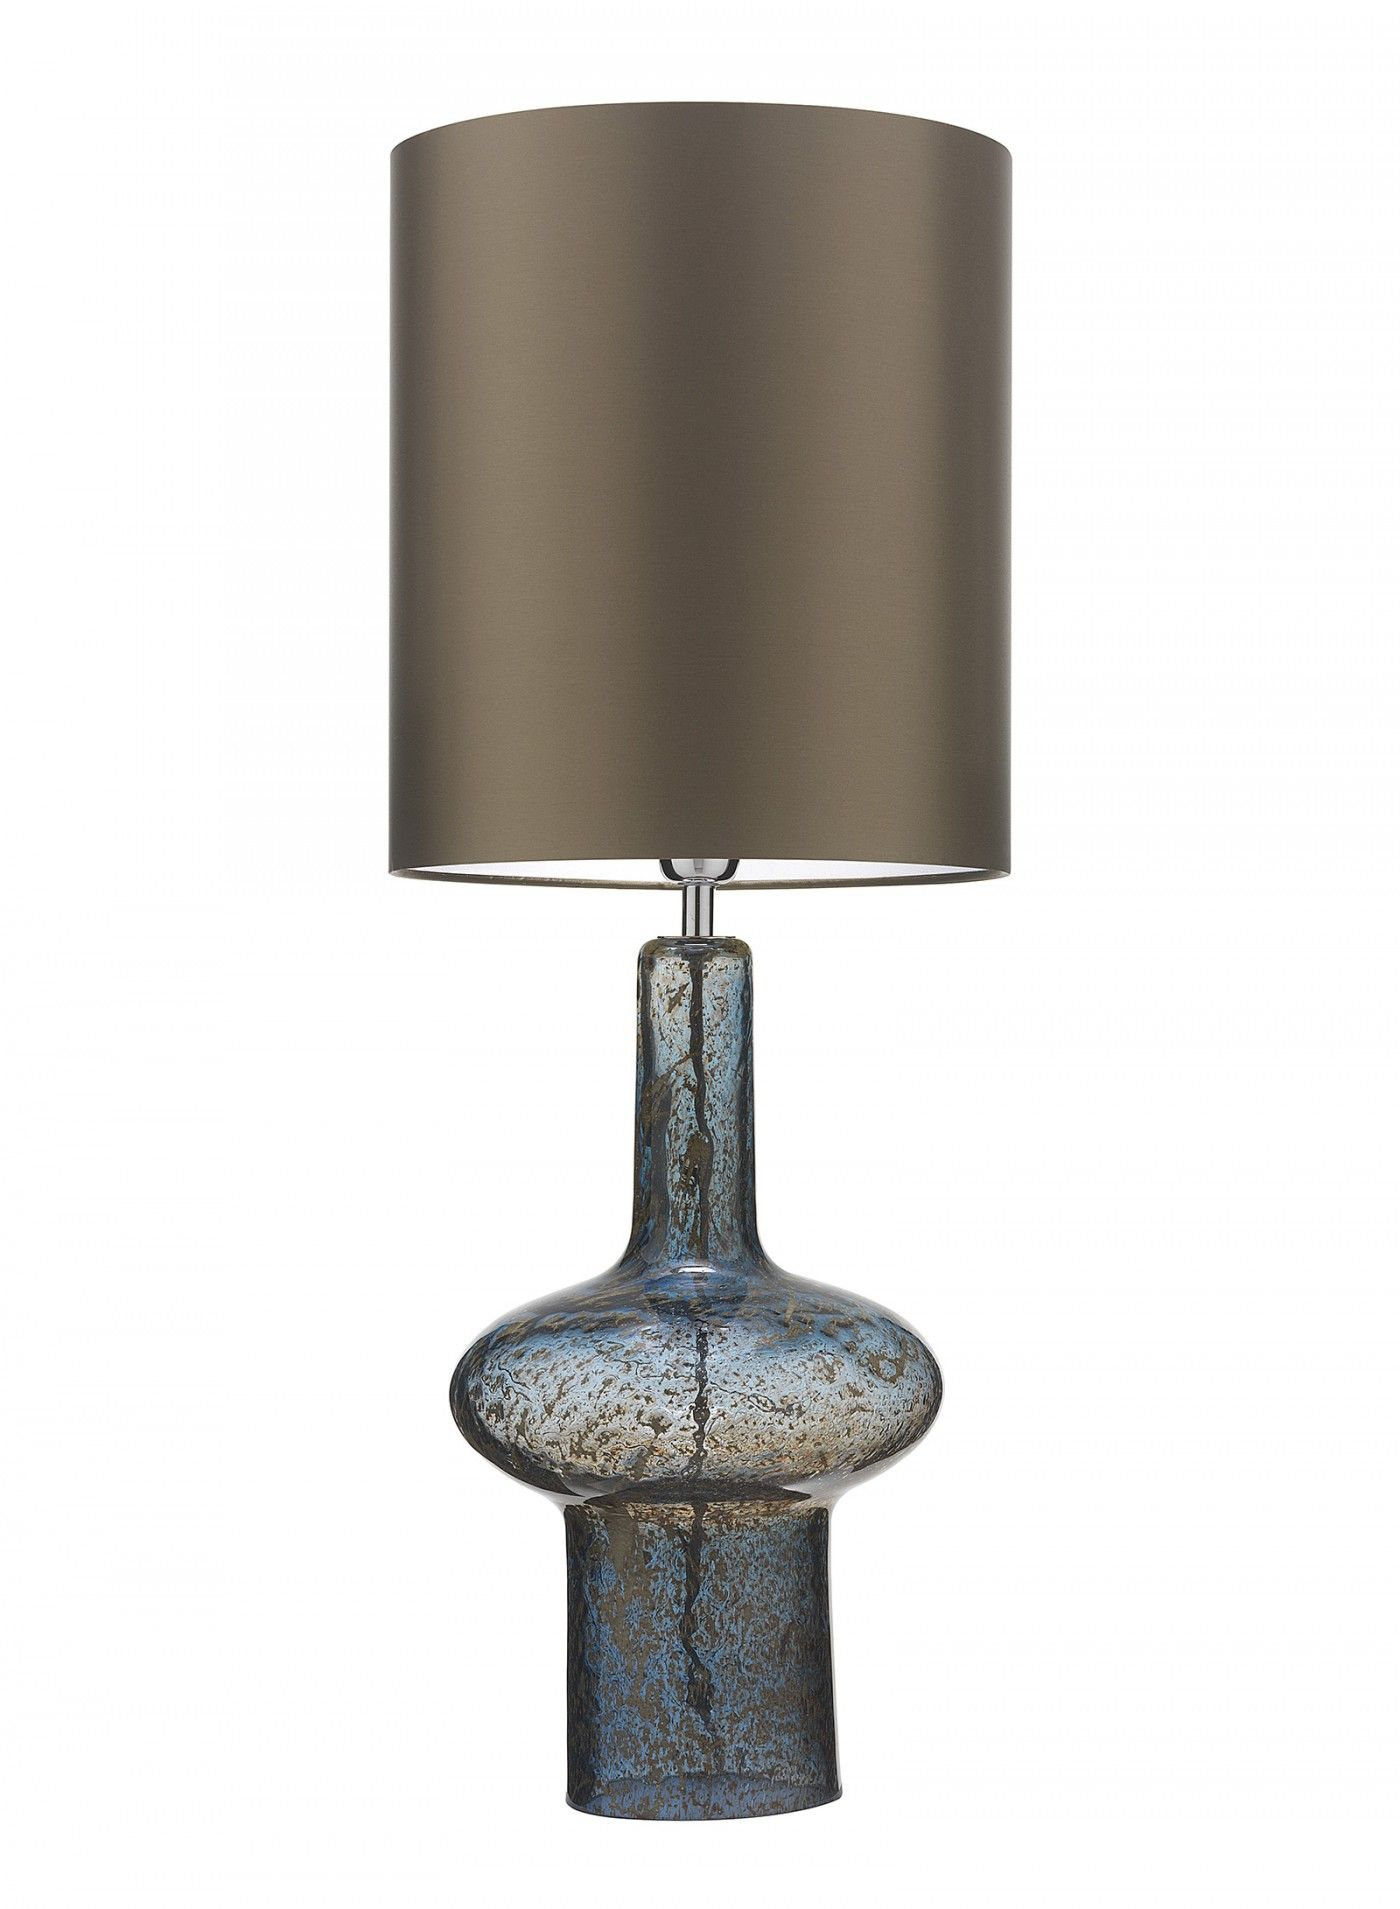 Verdi Indigo Blue Table Lamp   Mould Blown Glass With Volcanic Frit, Lava  And Marble Textures And Patinas Creating A Stunning Form.